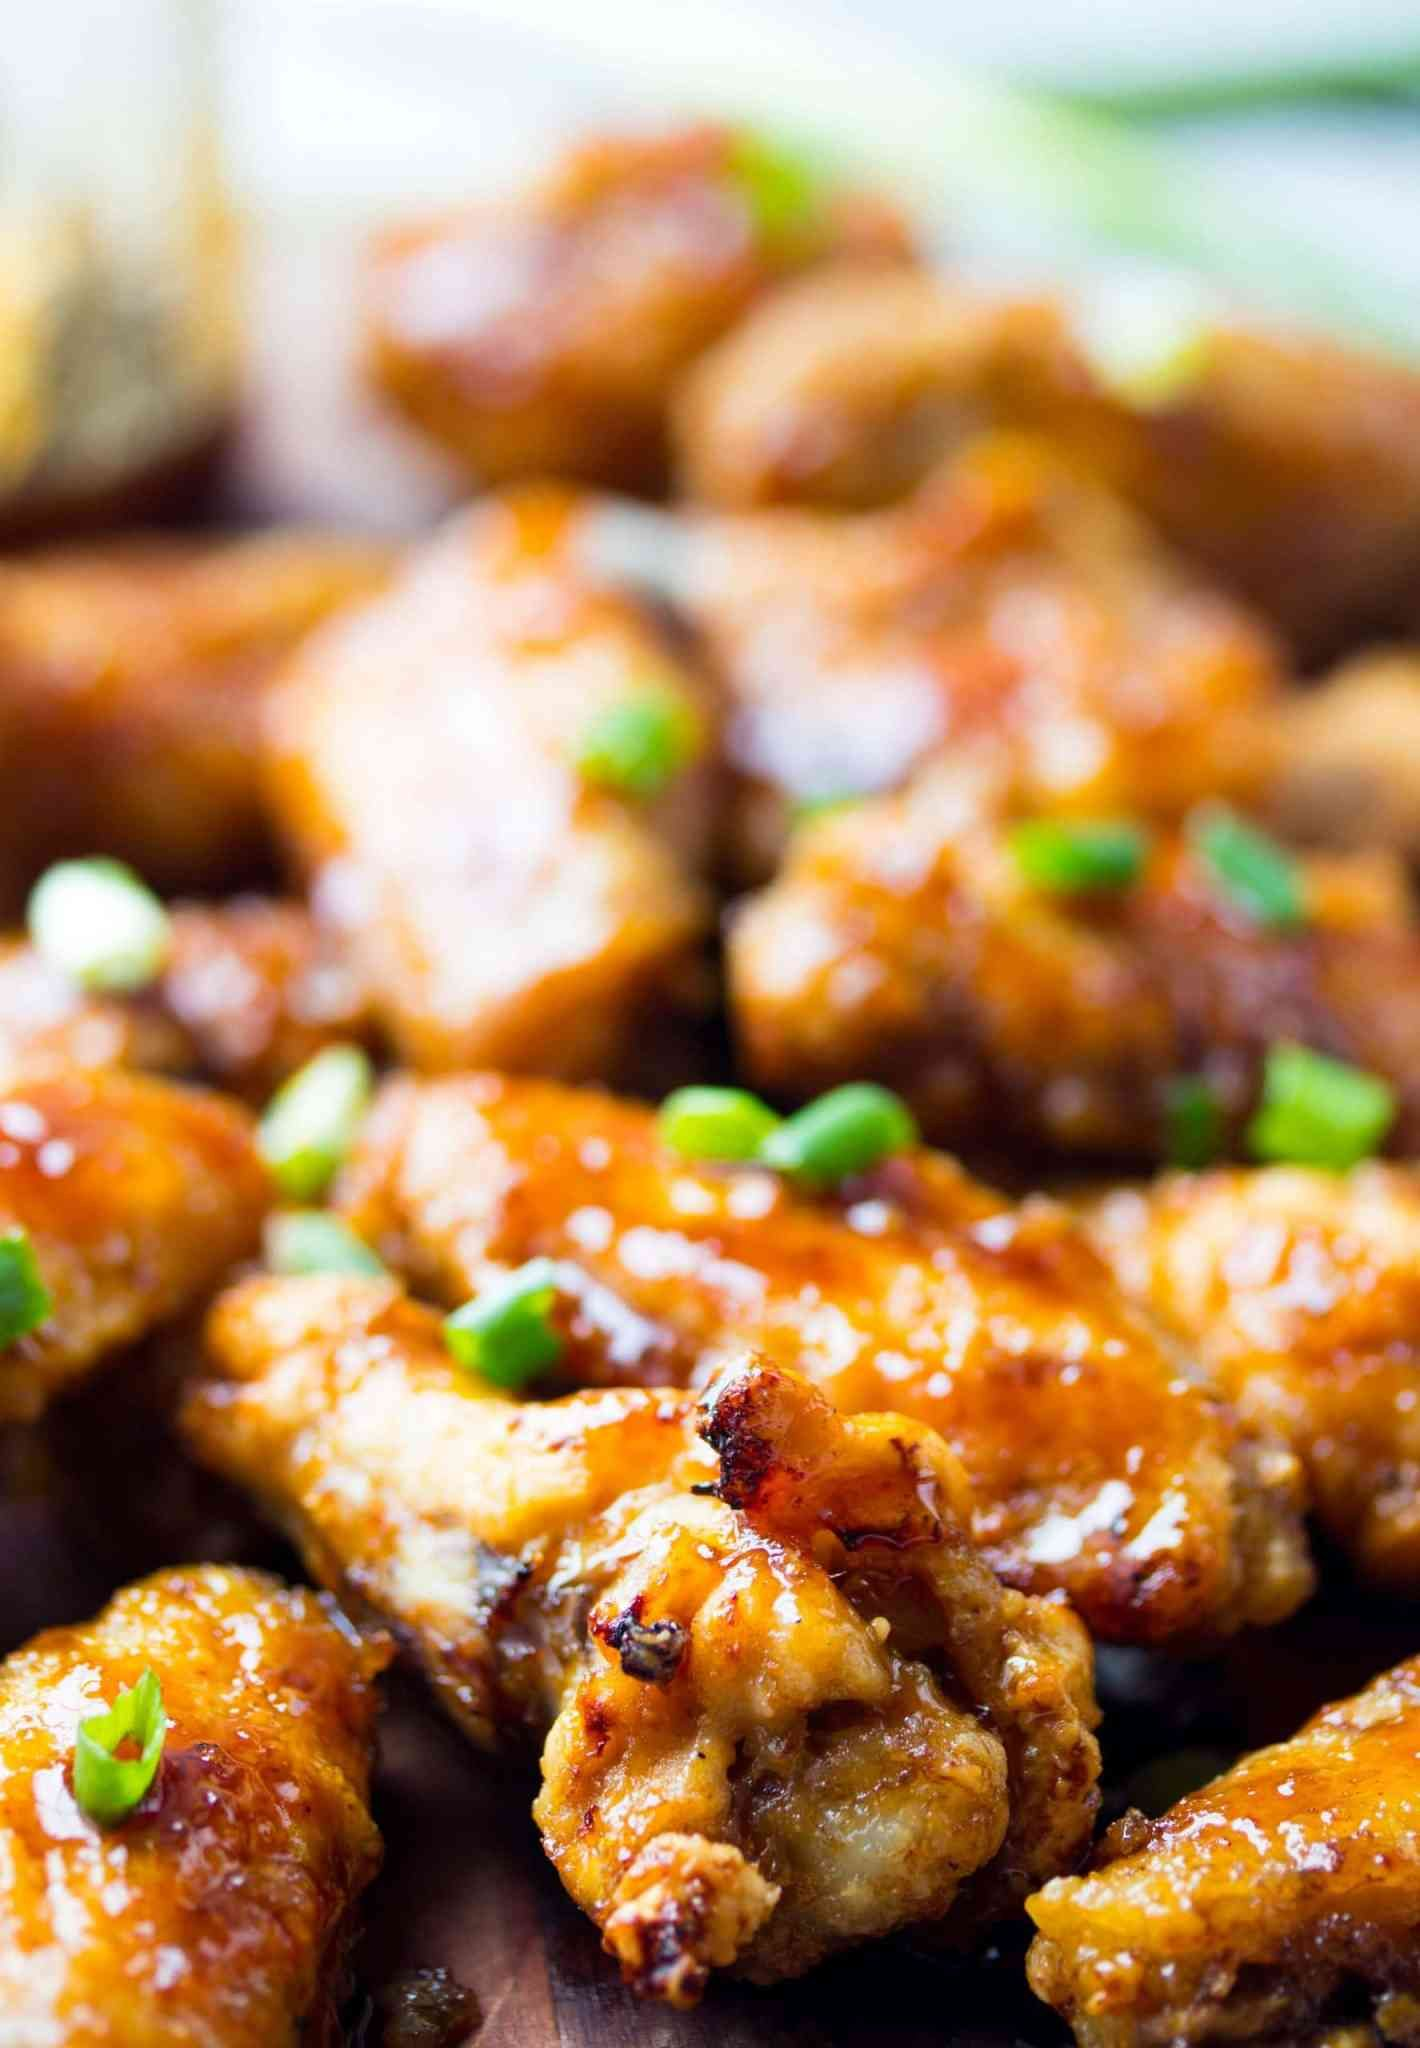 how long to cook frozen hot wings in air fryer